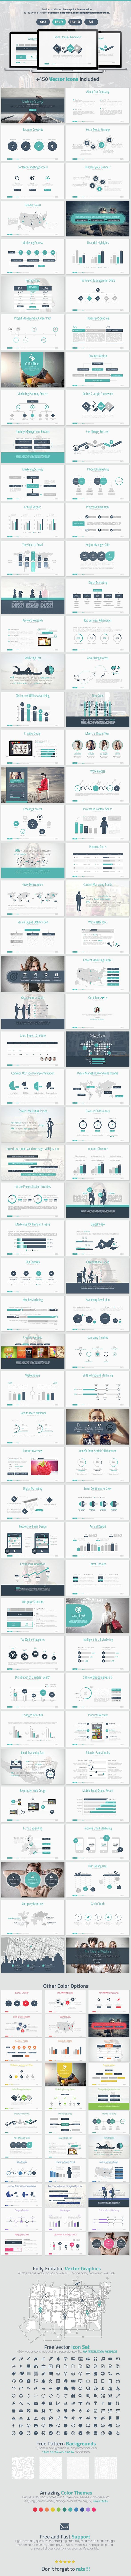 Marketing Strategy Powerpoint Presentation